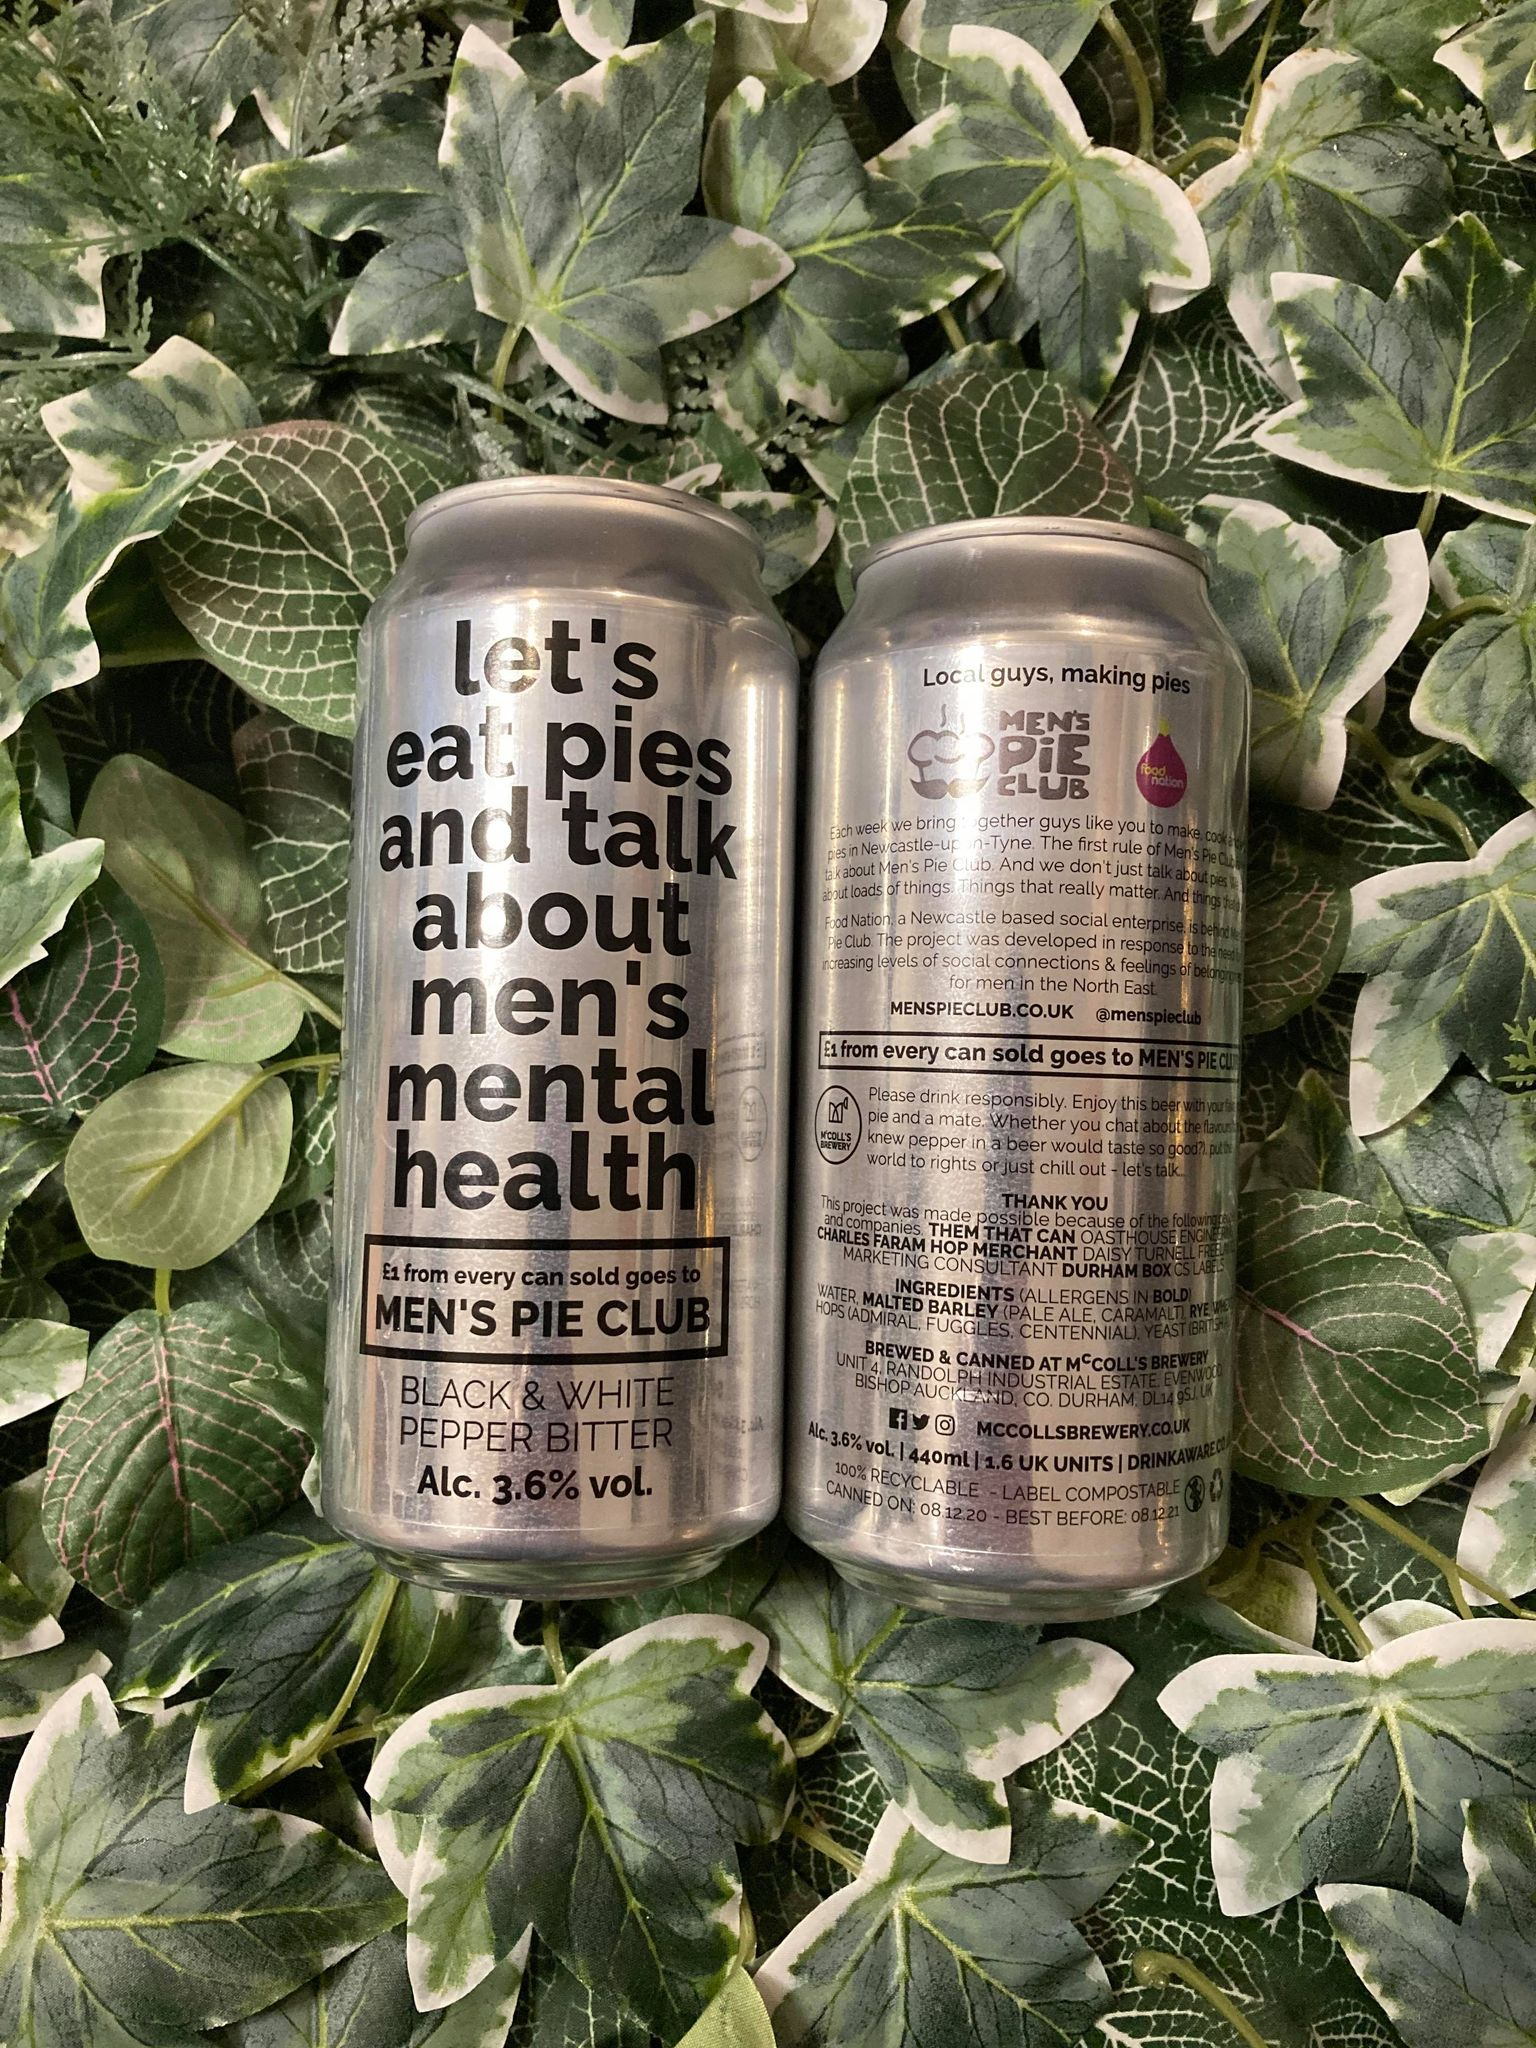 McColls - Let's eat pies and talk about men's mental health 3.6%